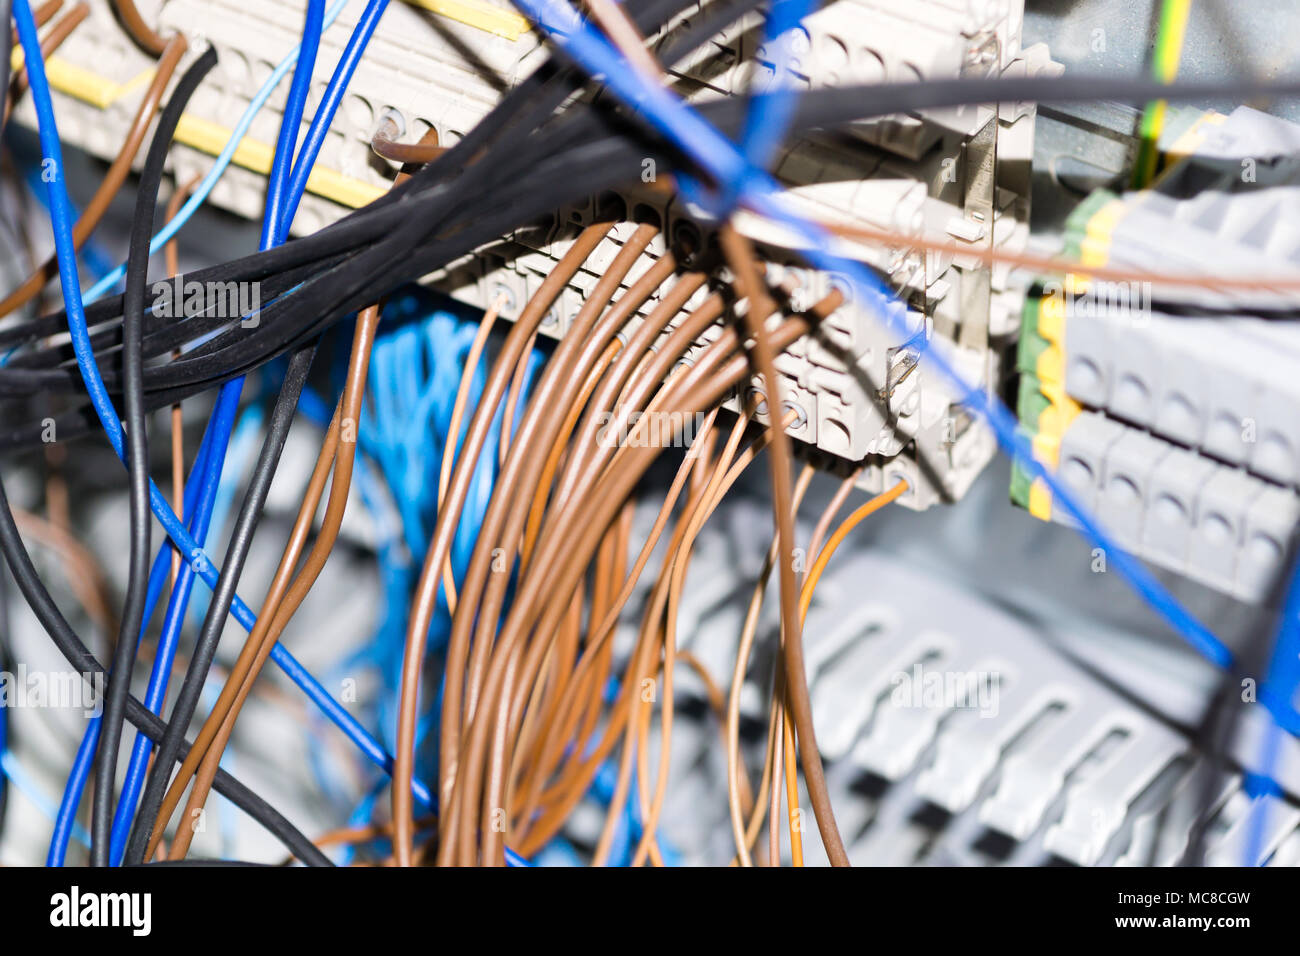 hight resolution of electrical equipment components installation in fuse box wiring and connections